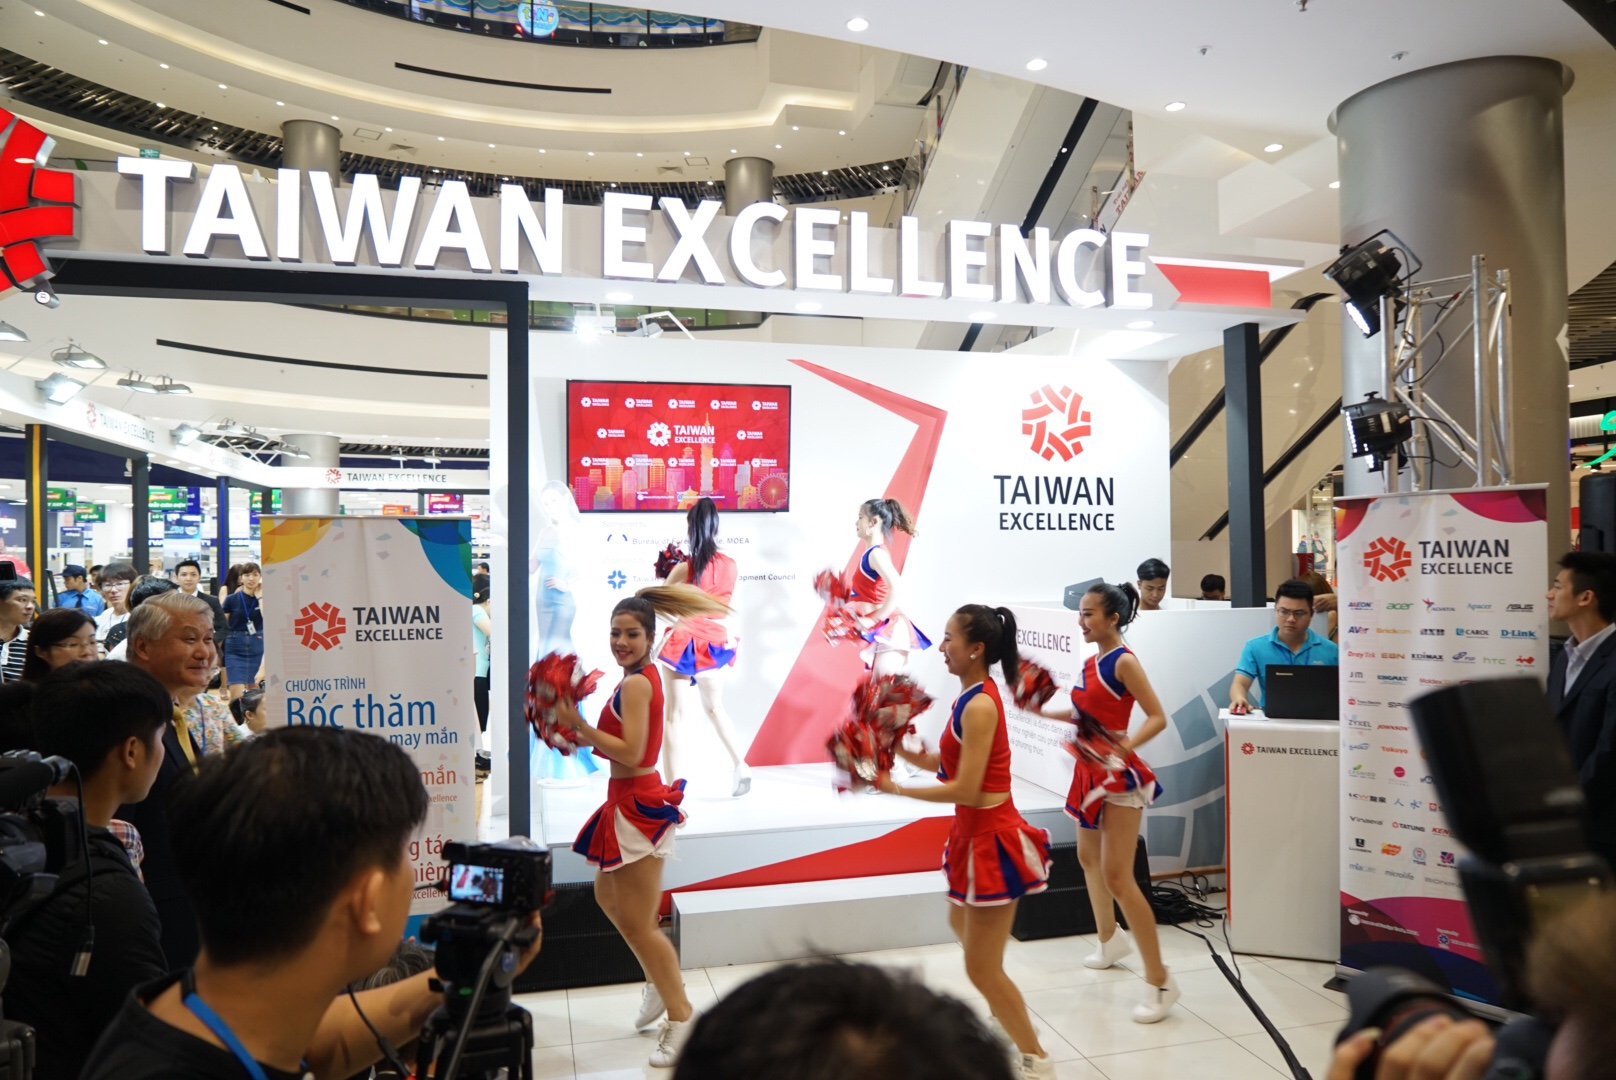 ct Taiwan Excellence tại AE Mall Long Biên